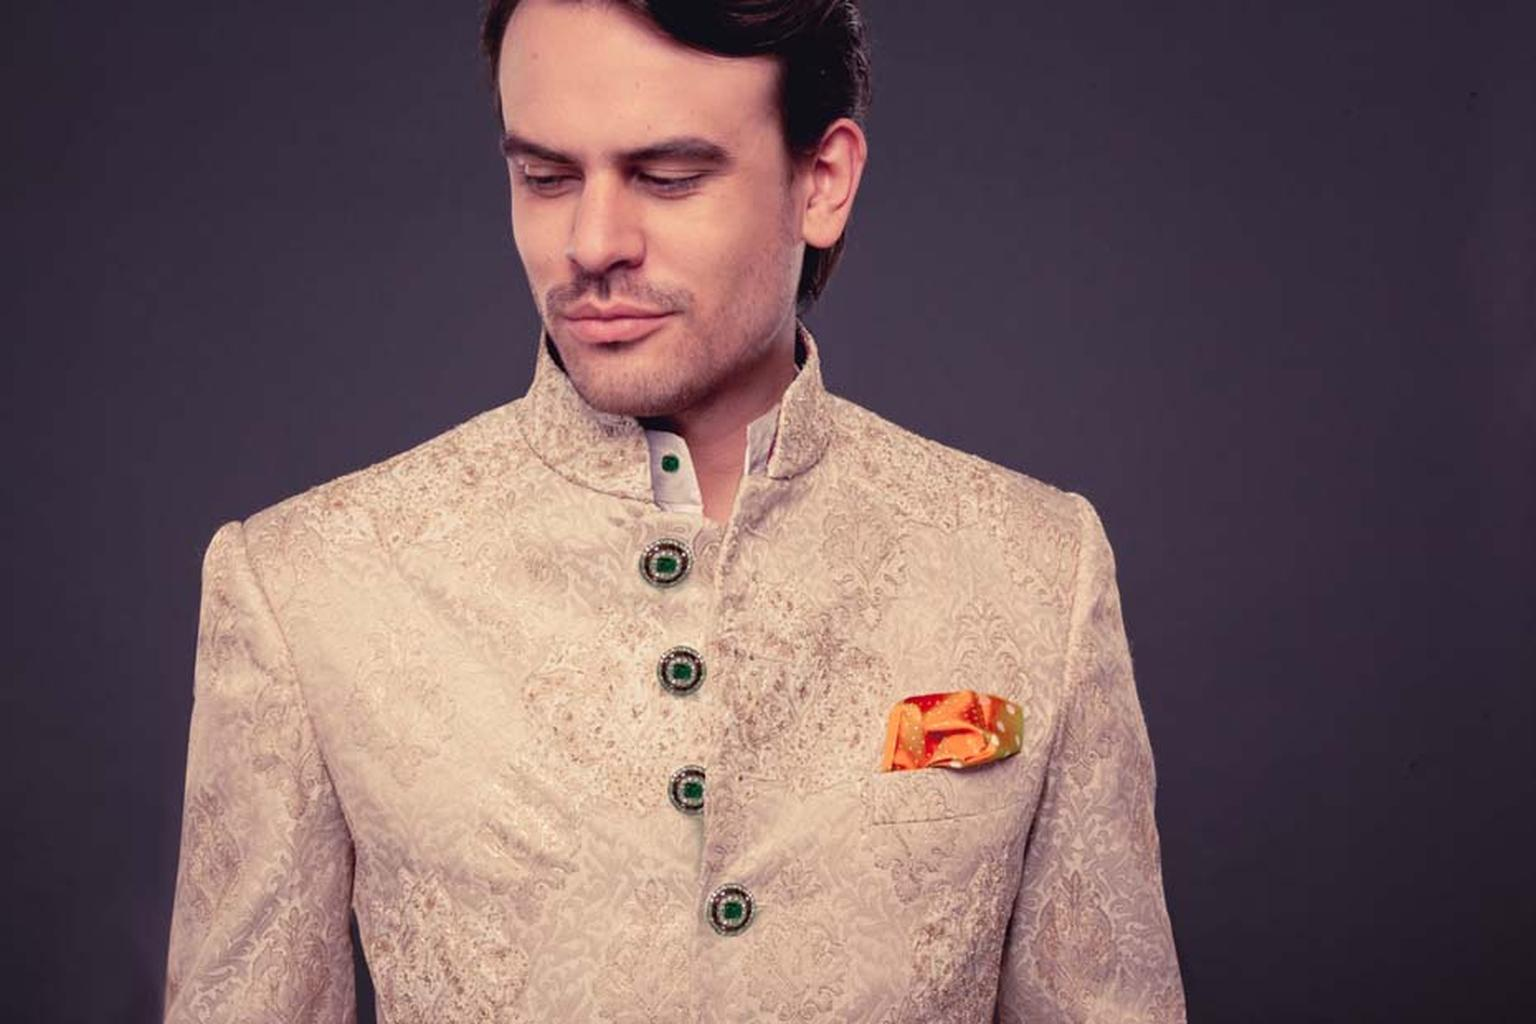 A sherwani by fashion designer Raghavendra Rathore featuring diamond and emerald buttons.